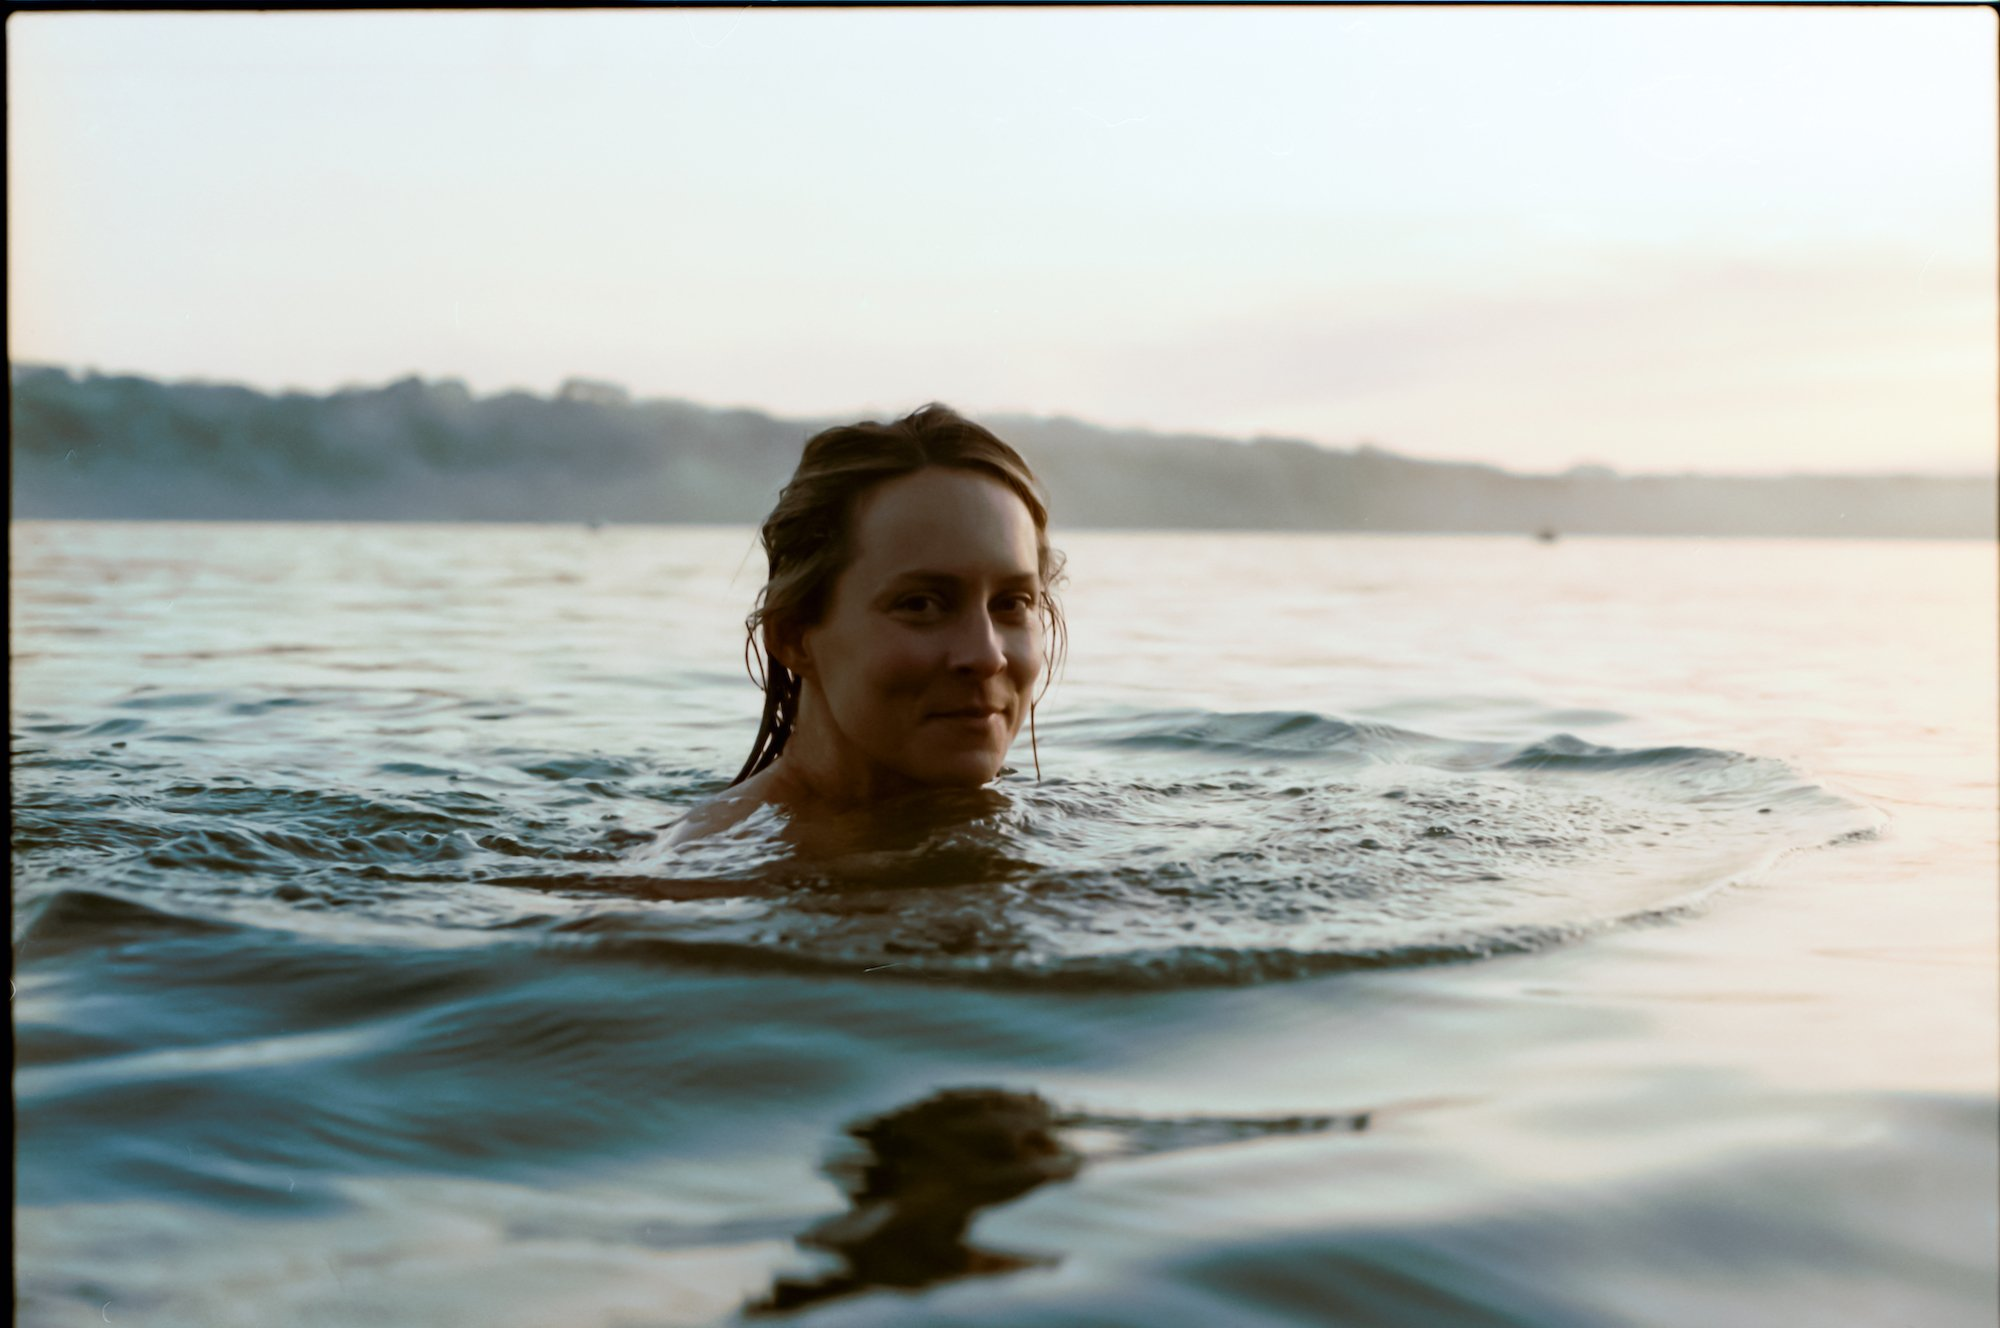 Lucy Laucht cold water swimming